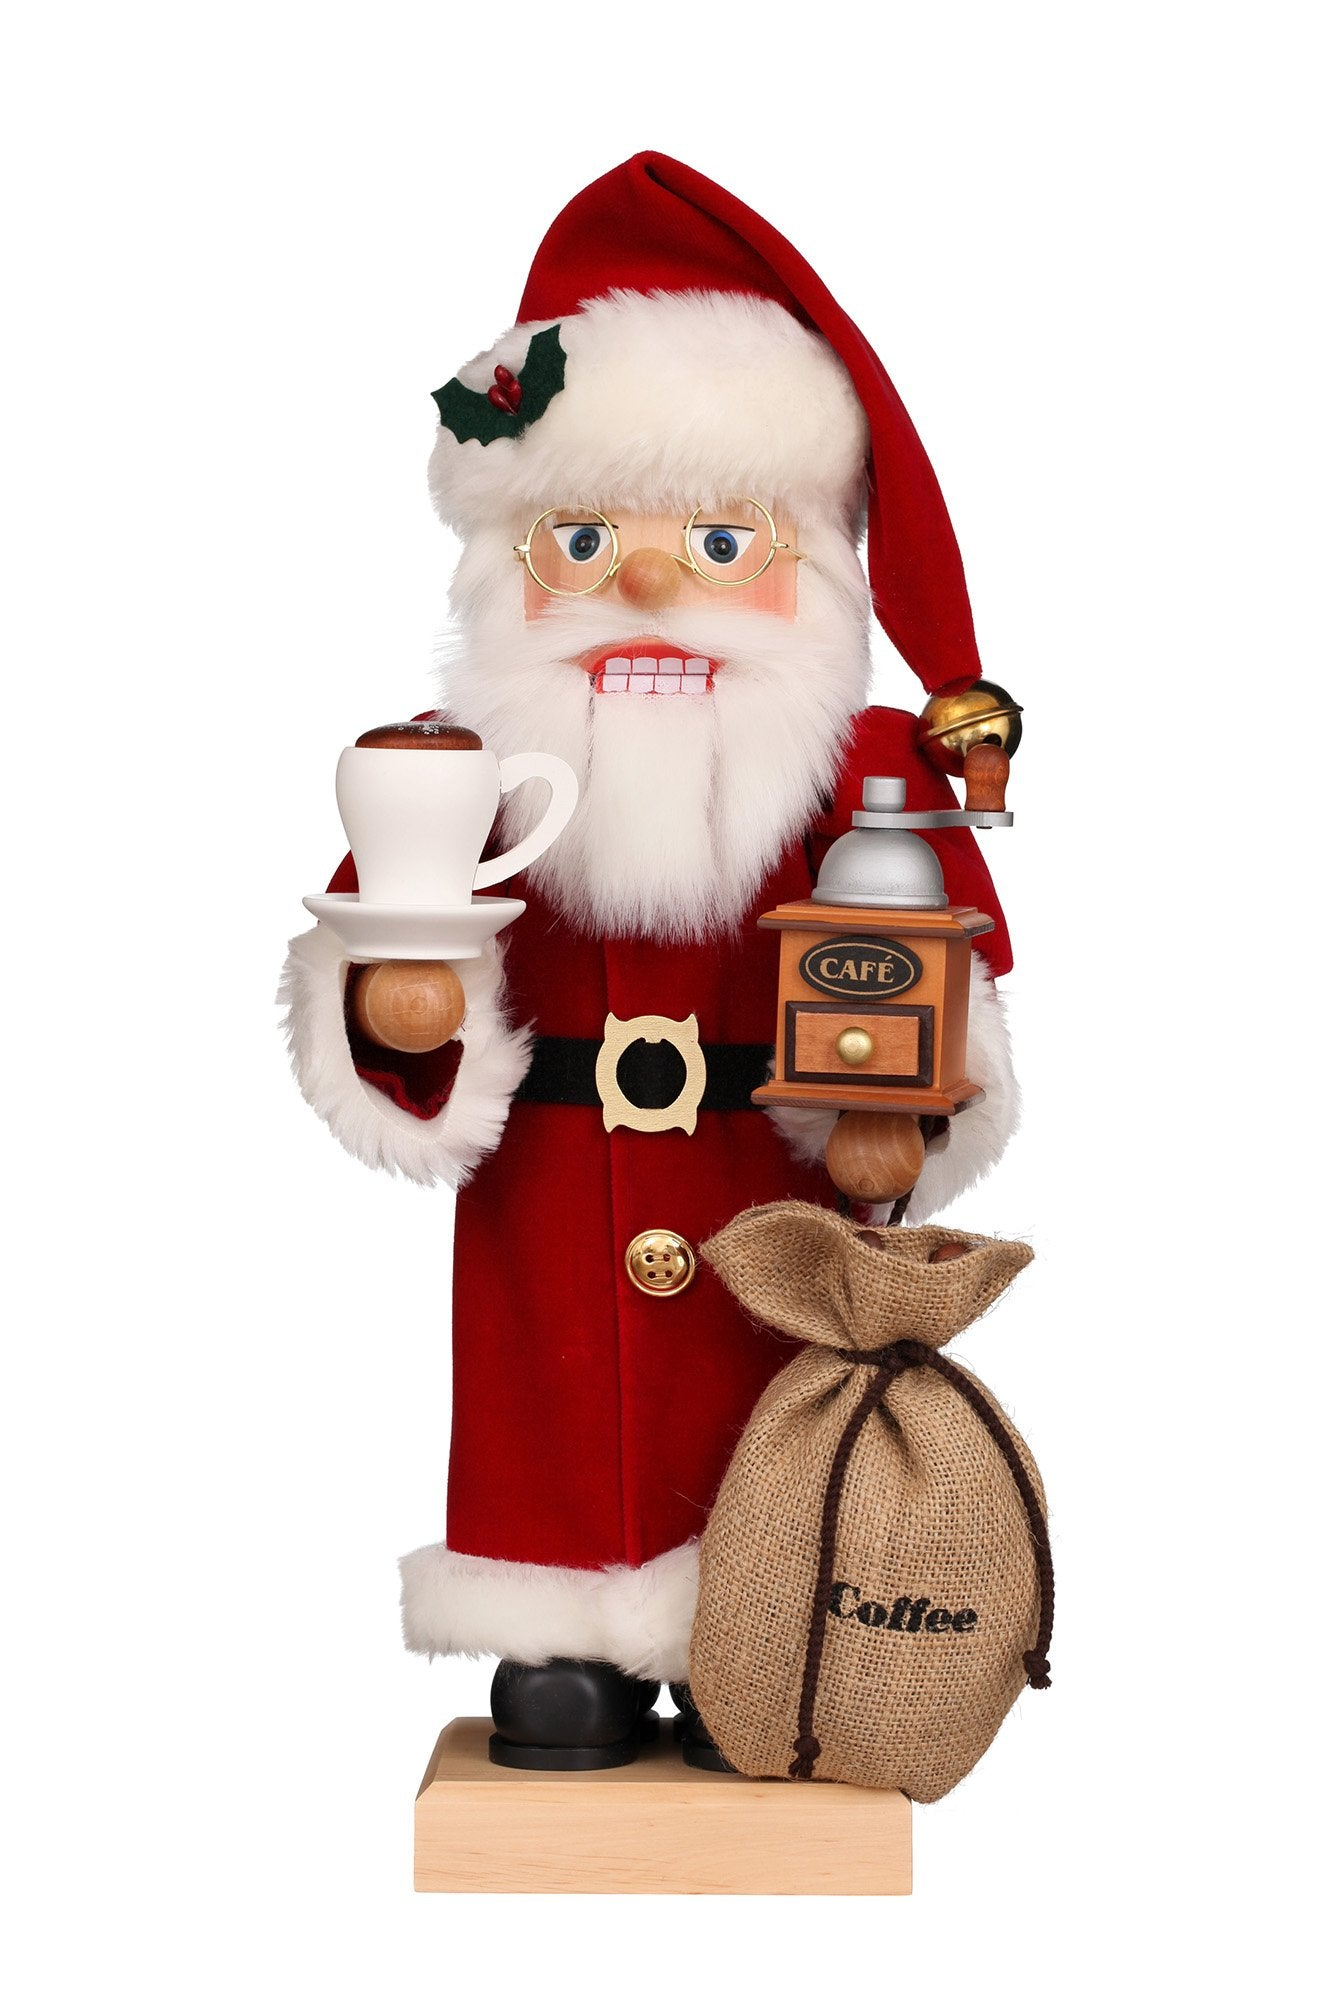 Nutcracker (Premium Collector's Edition) - Barista Santa